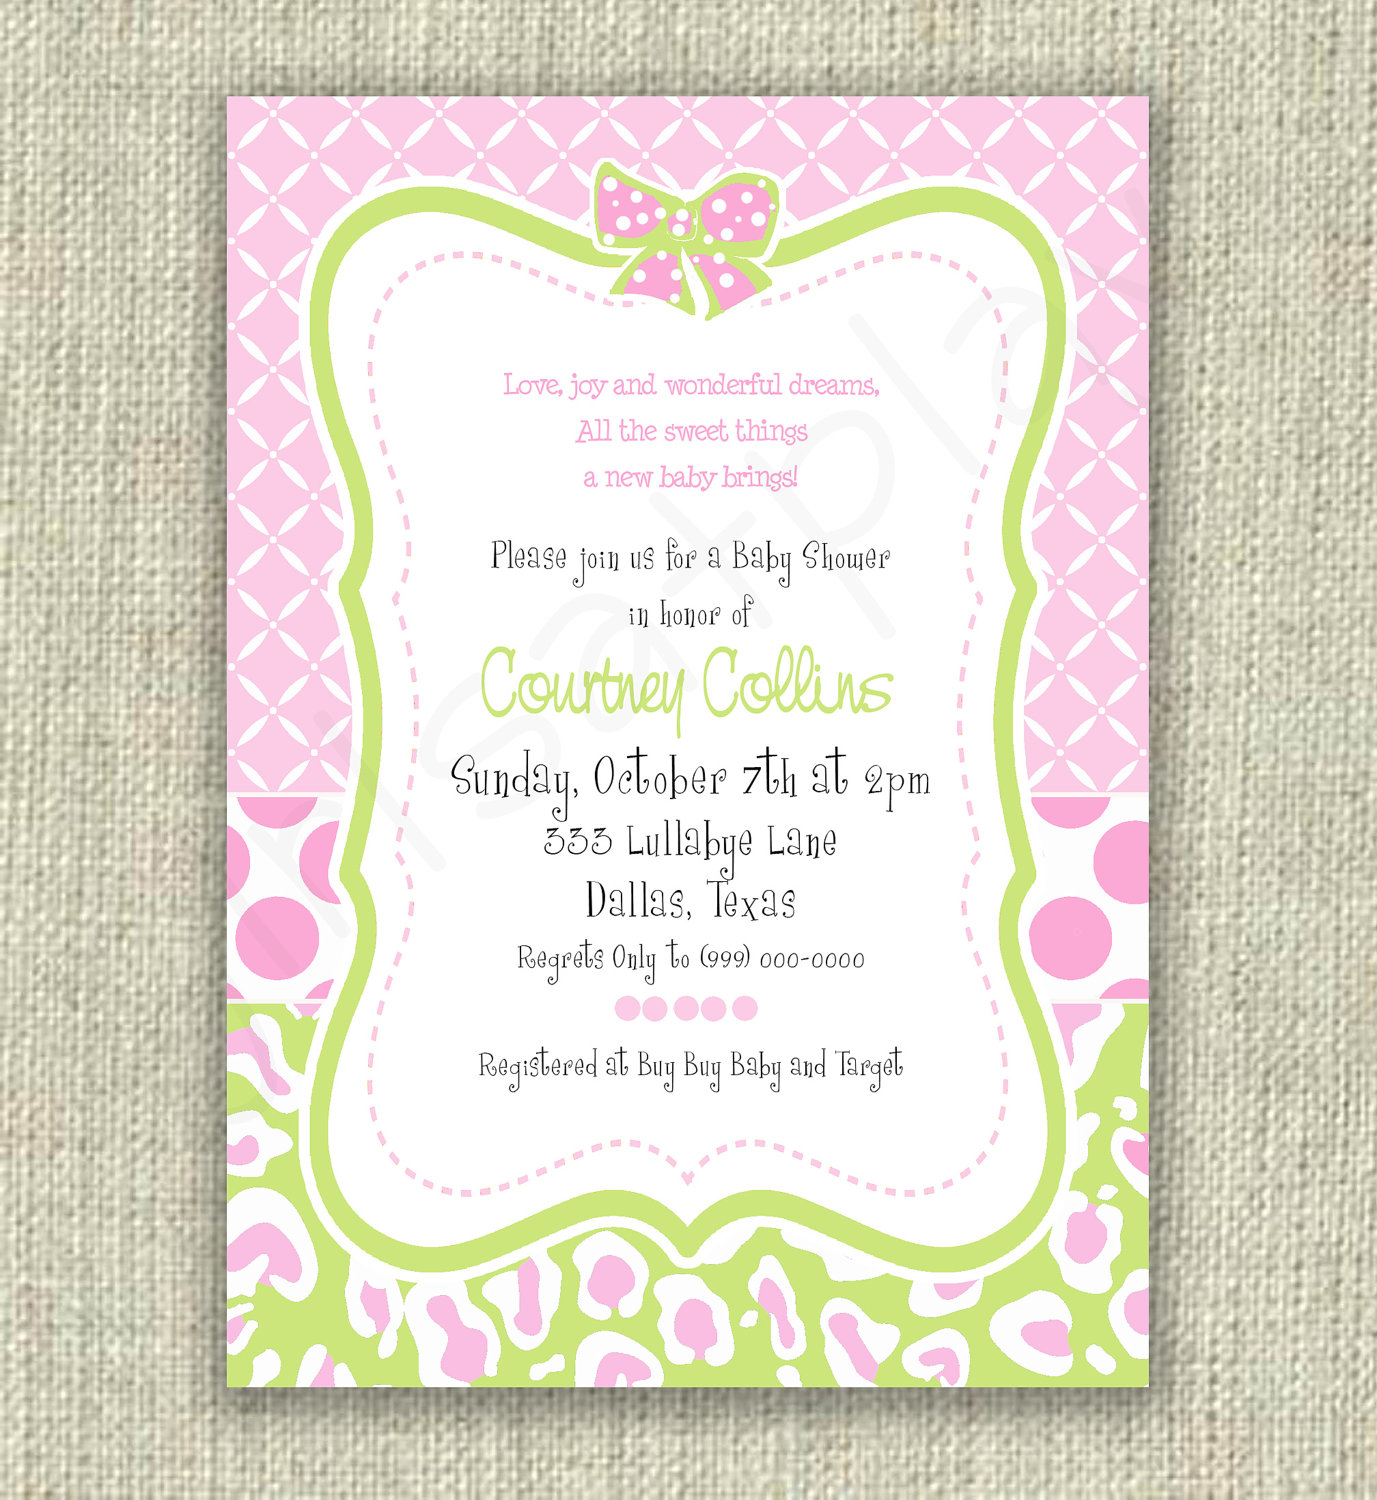 Full Size of Baby Shower:delightful Baby Shower Invitation Wording Picture Designs Baby Shower Invitation Wording Baby Favors Baby Shower Halls Baby Shower De Niño Baby Shower Wishing Well Baby Shower Cards Baby Shower Outfit Guest Baby Shower Invitations Wording Free Invitation Ideas